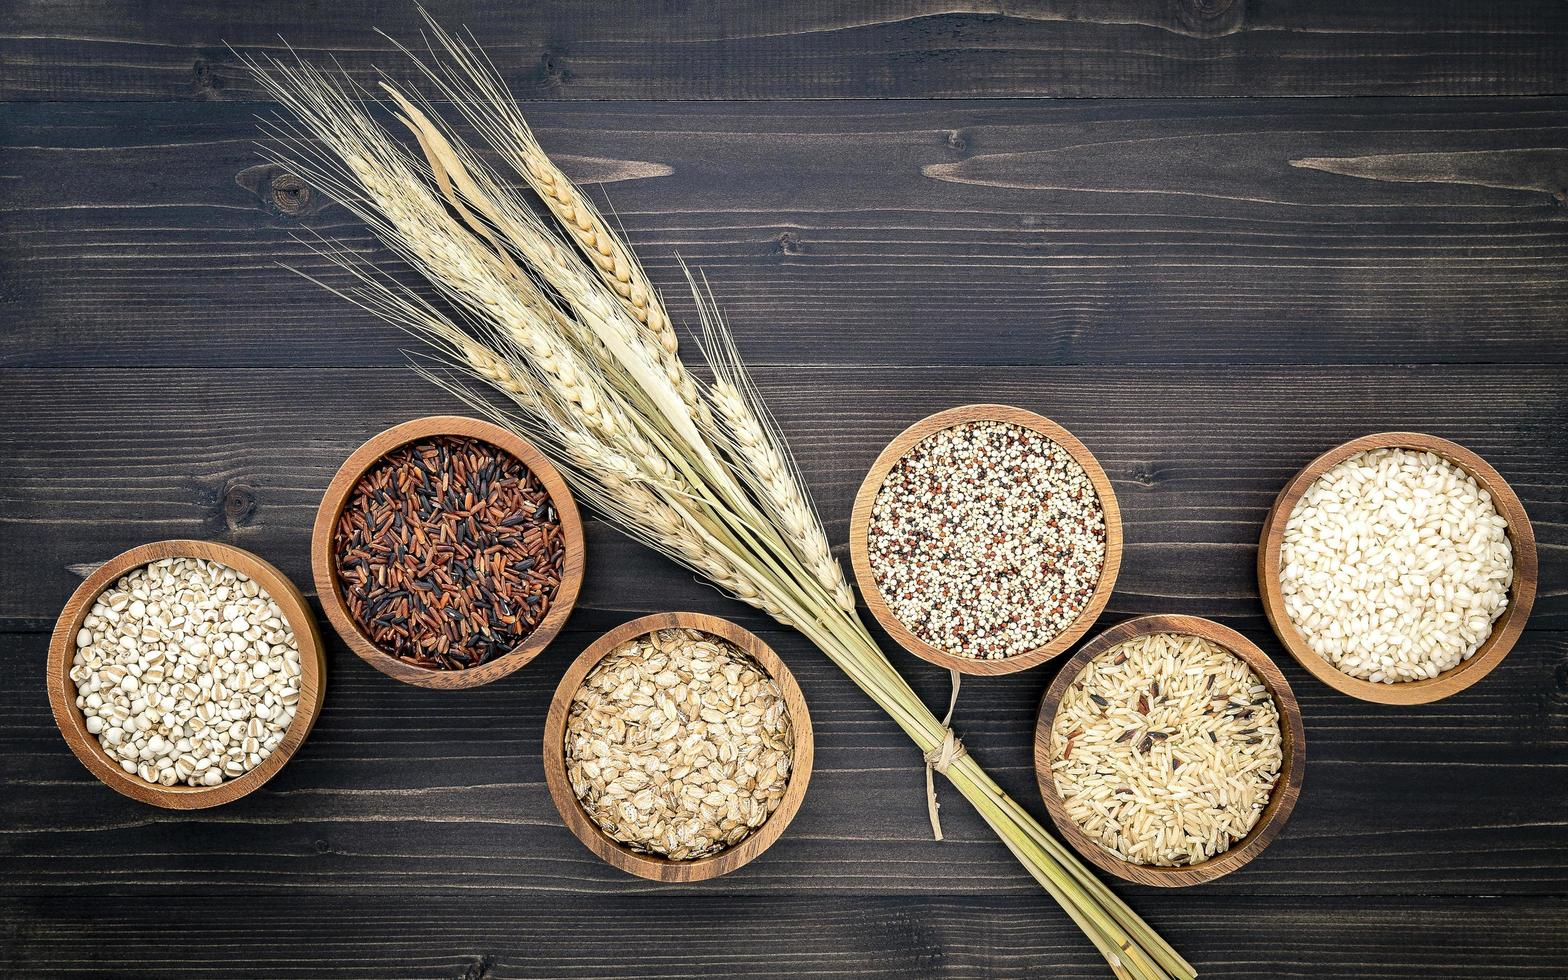 Grains in bowls photo